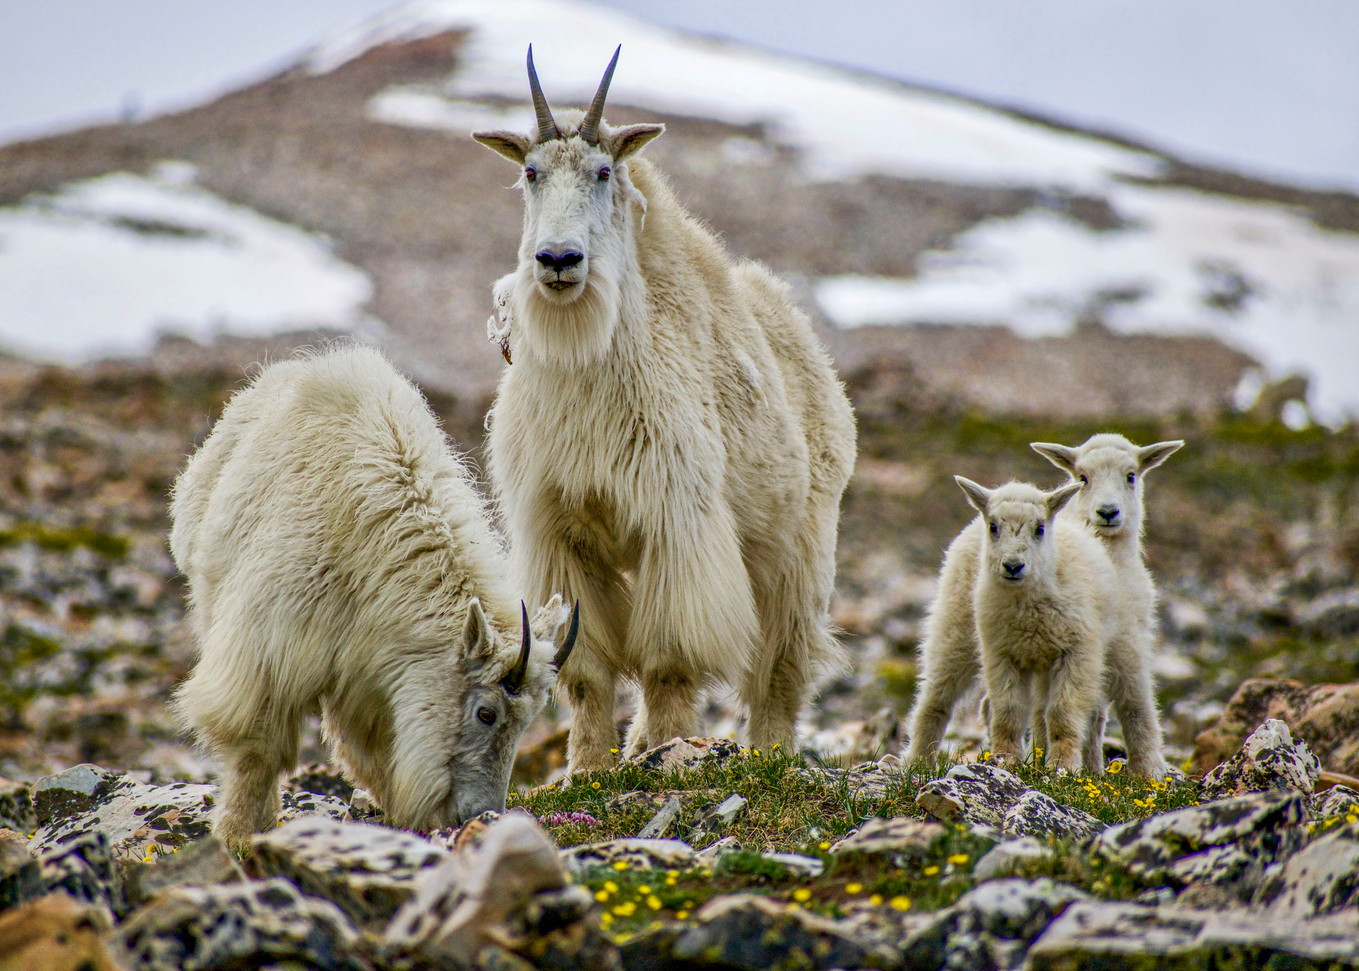 Mountain goats on Quandry Peak in Colorado, 2018.